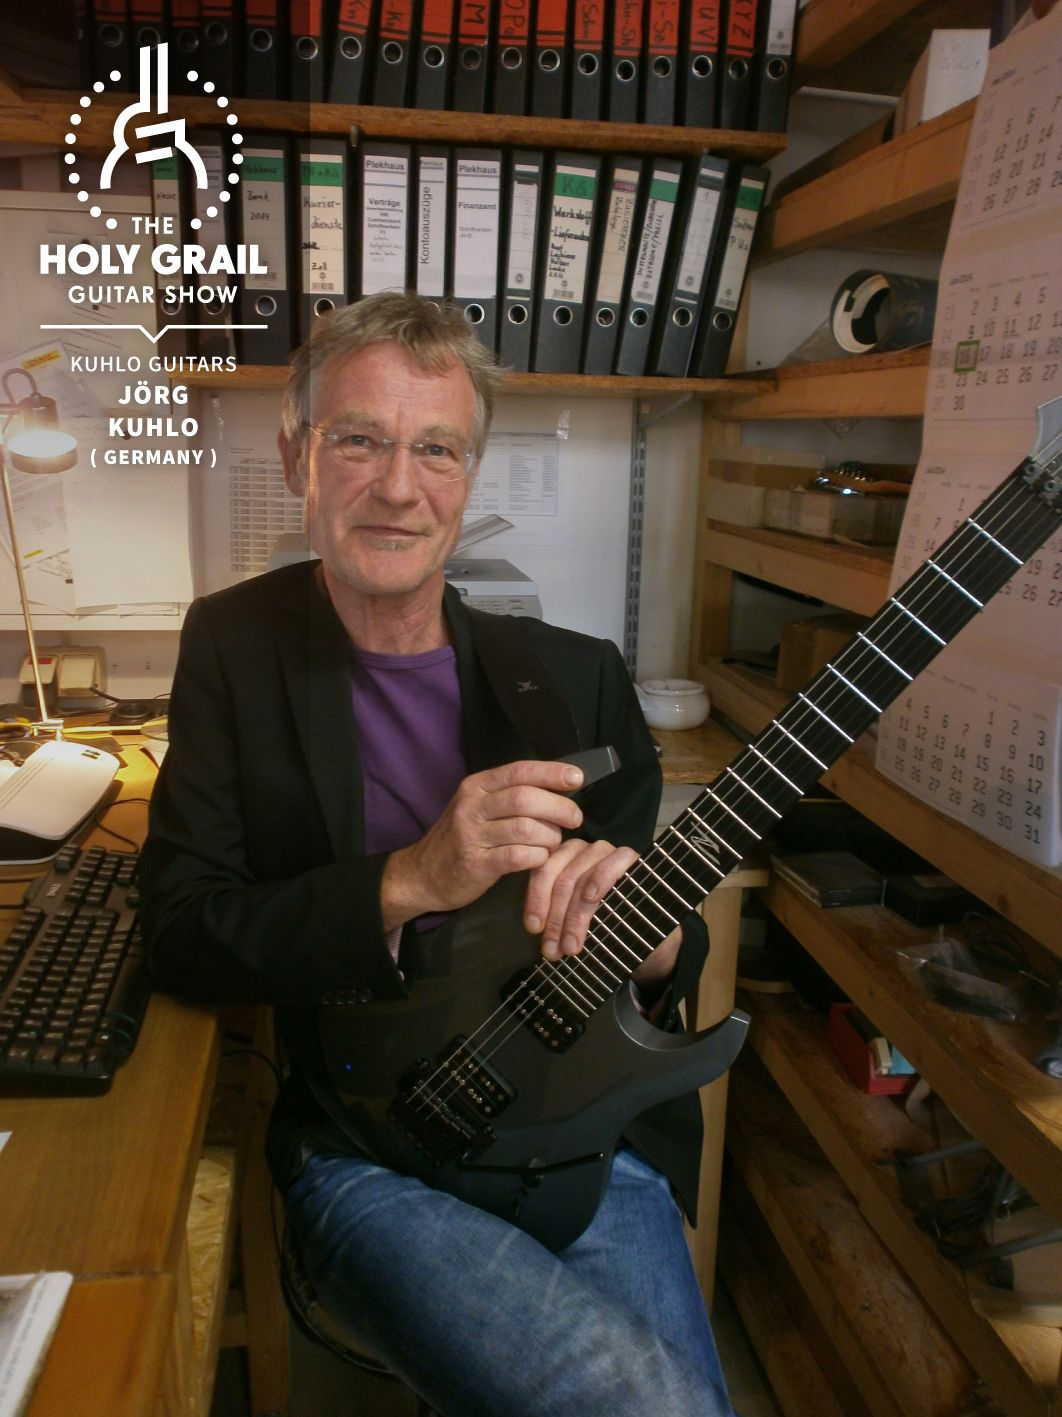 Exhibitor at The Holy Grail Guitar Show 2014: Jörg Kuhlo, Kuhlo Guitars, Germany  http://www.kuhloguitars.de  https://www.facebook.com/kuhloguitars http://holygrailguitarshow.com